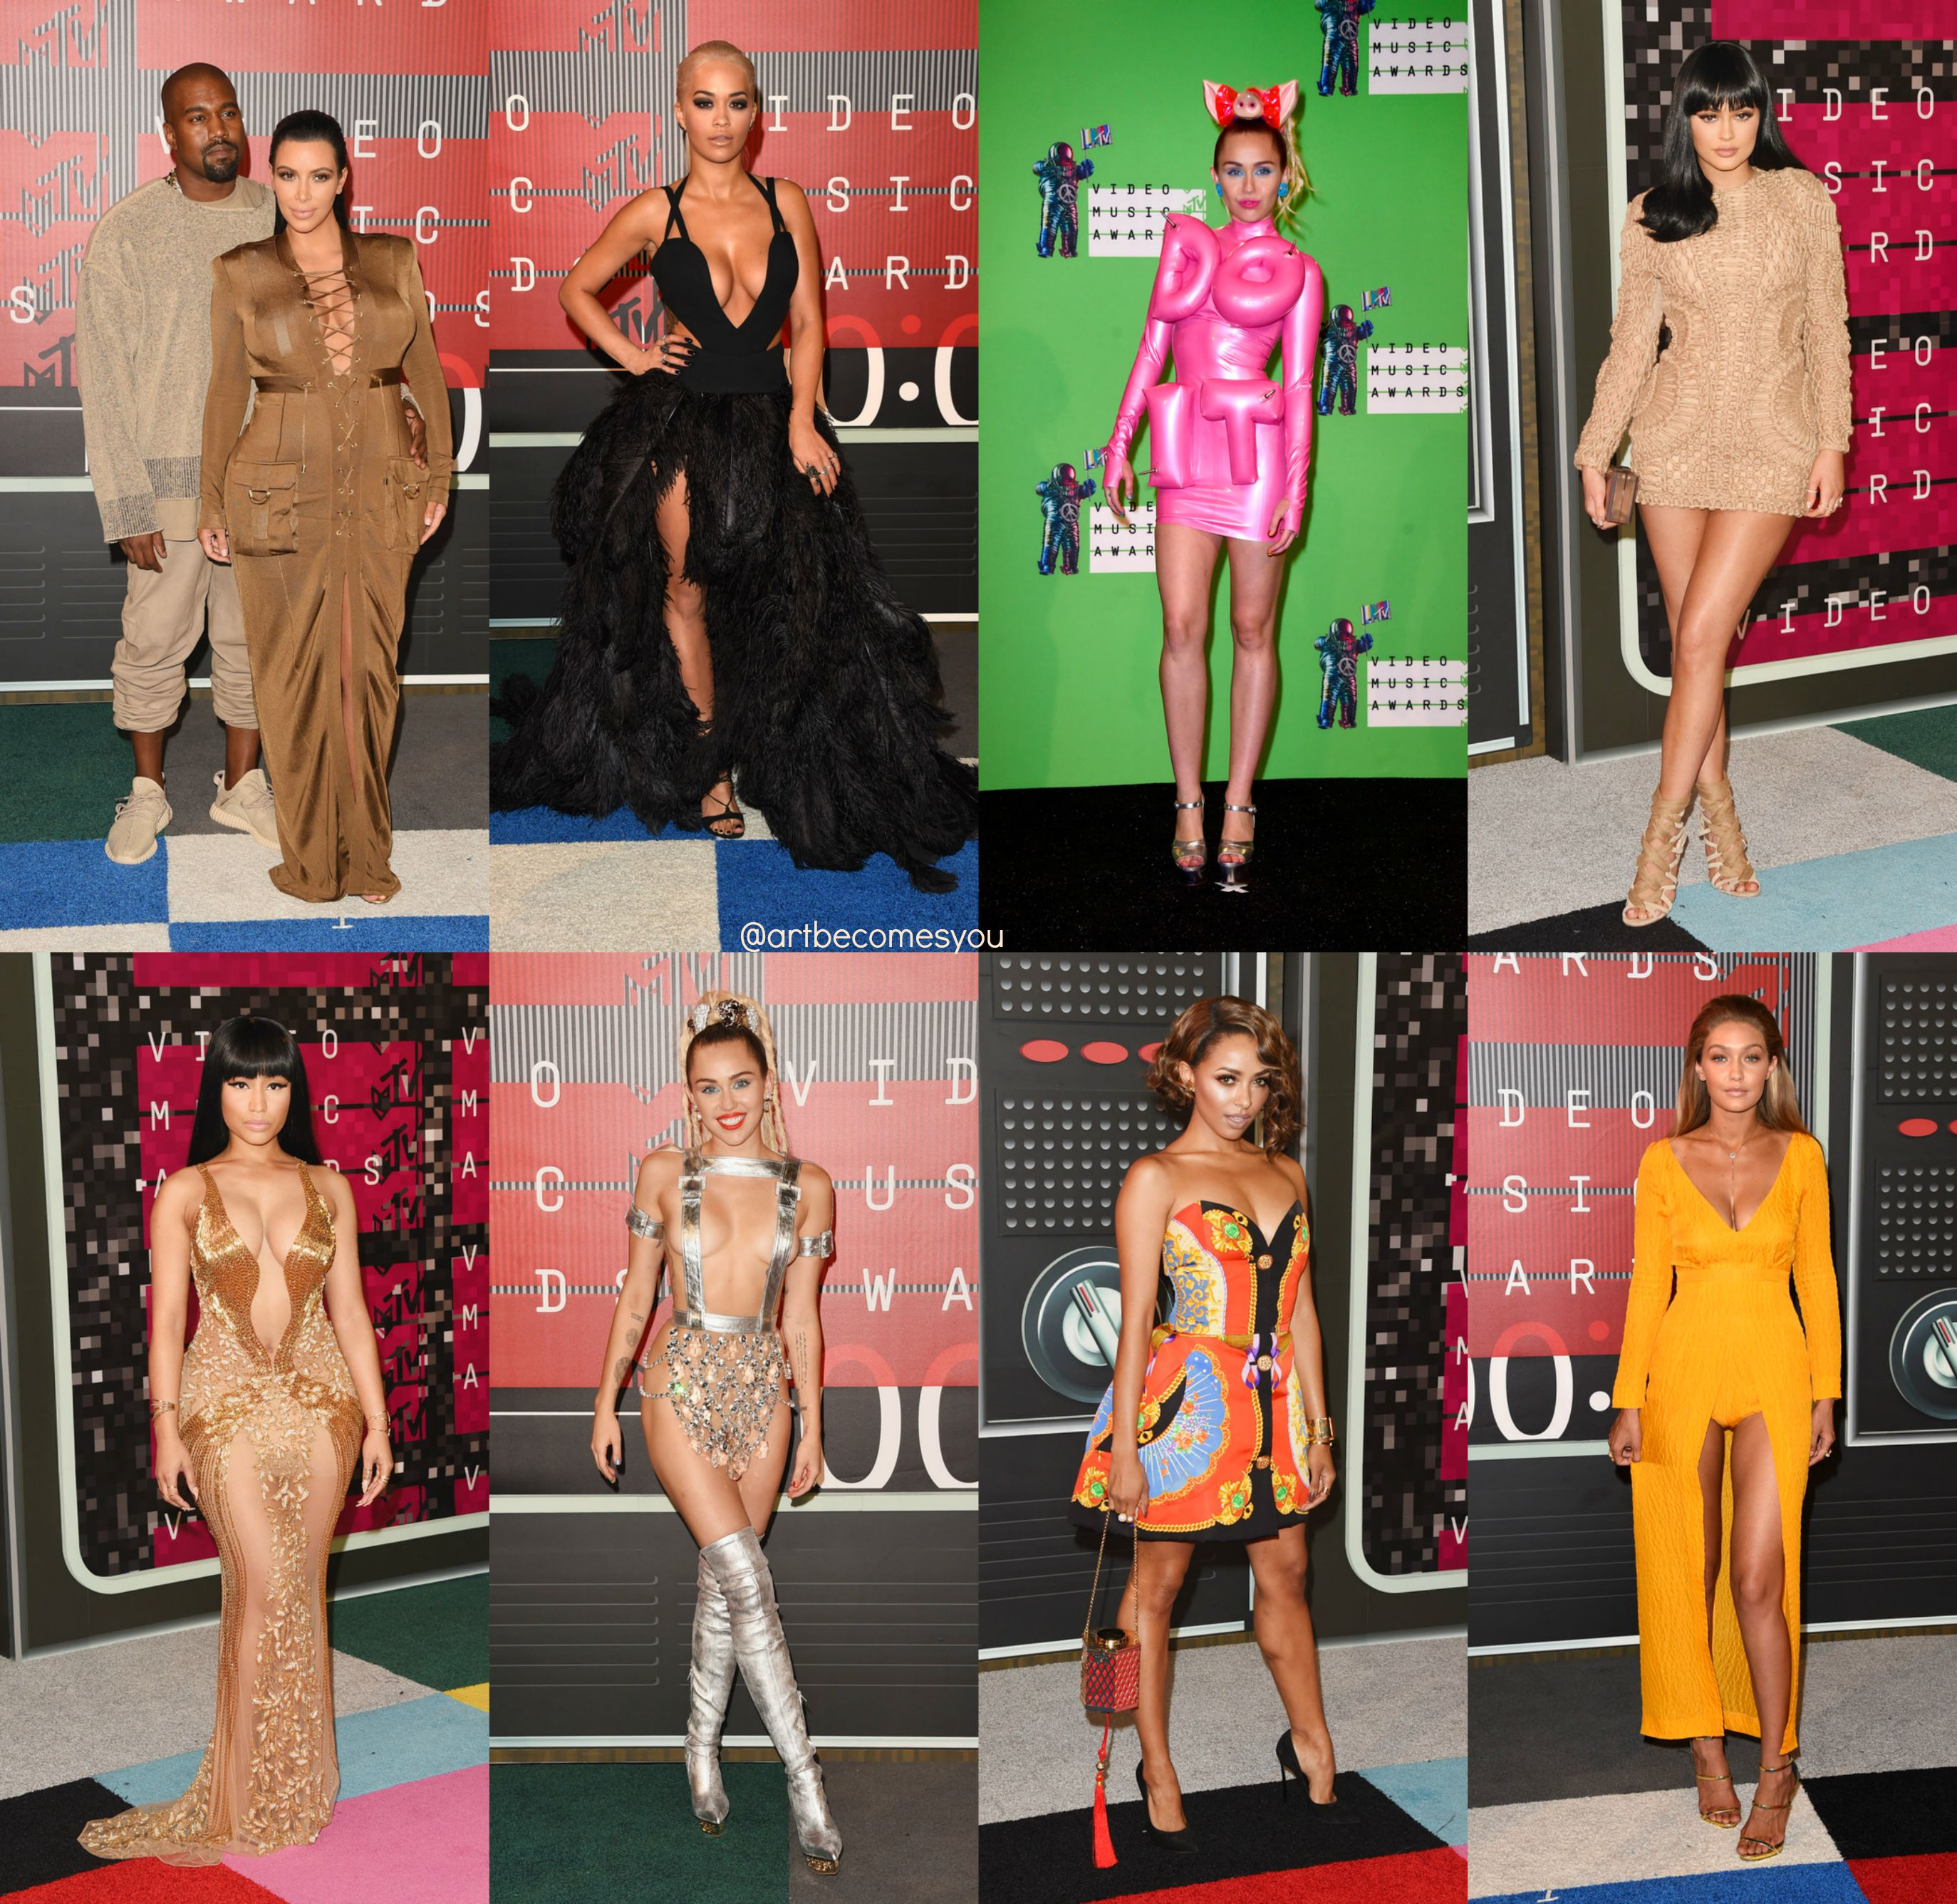 mtv vmas 2015 red carpet awards fashion review